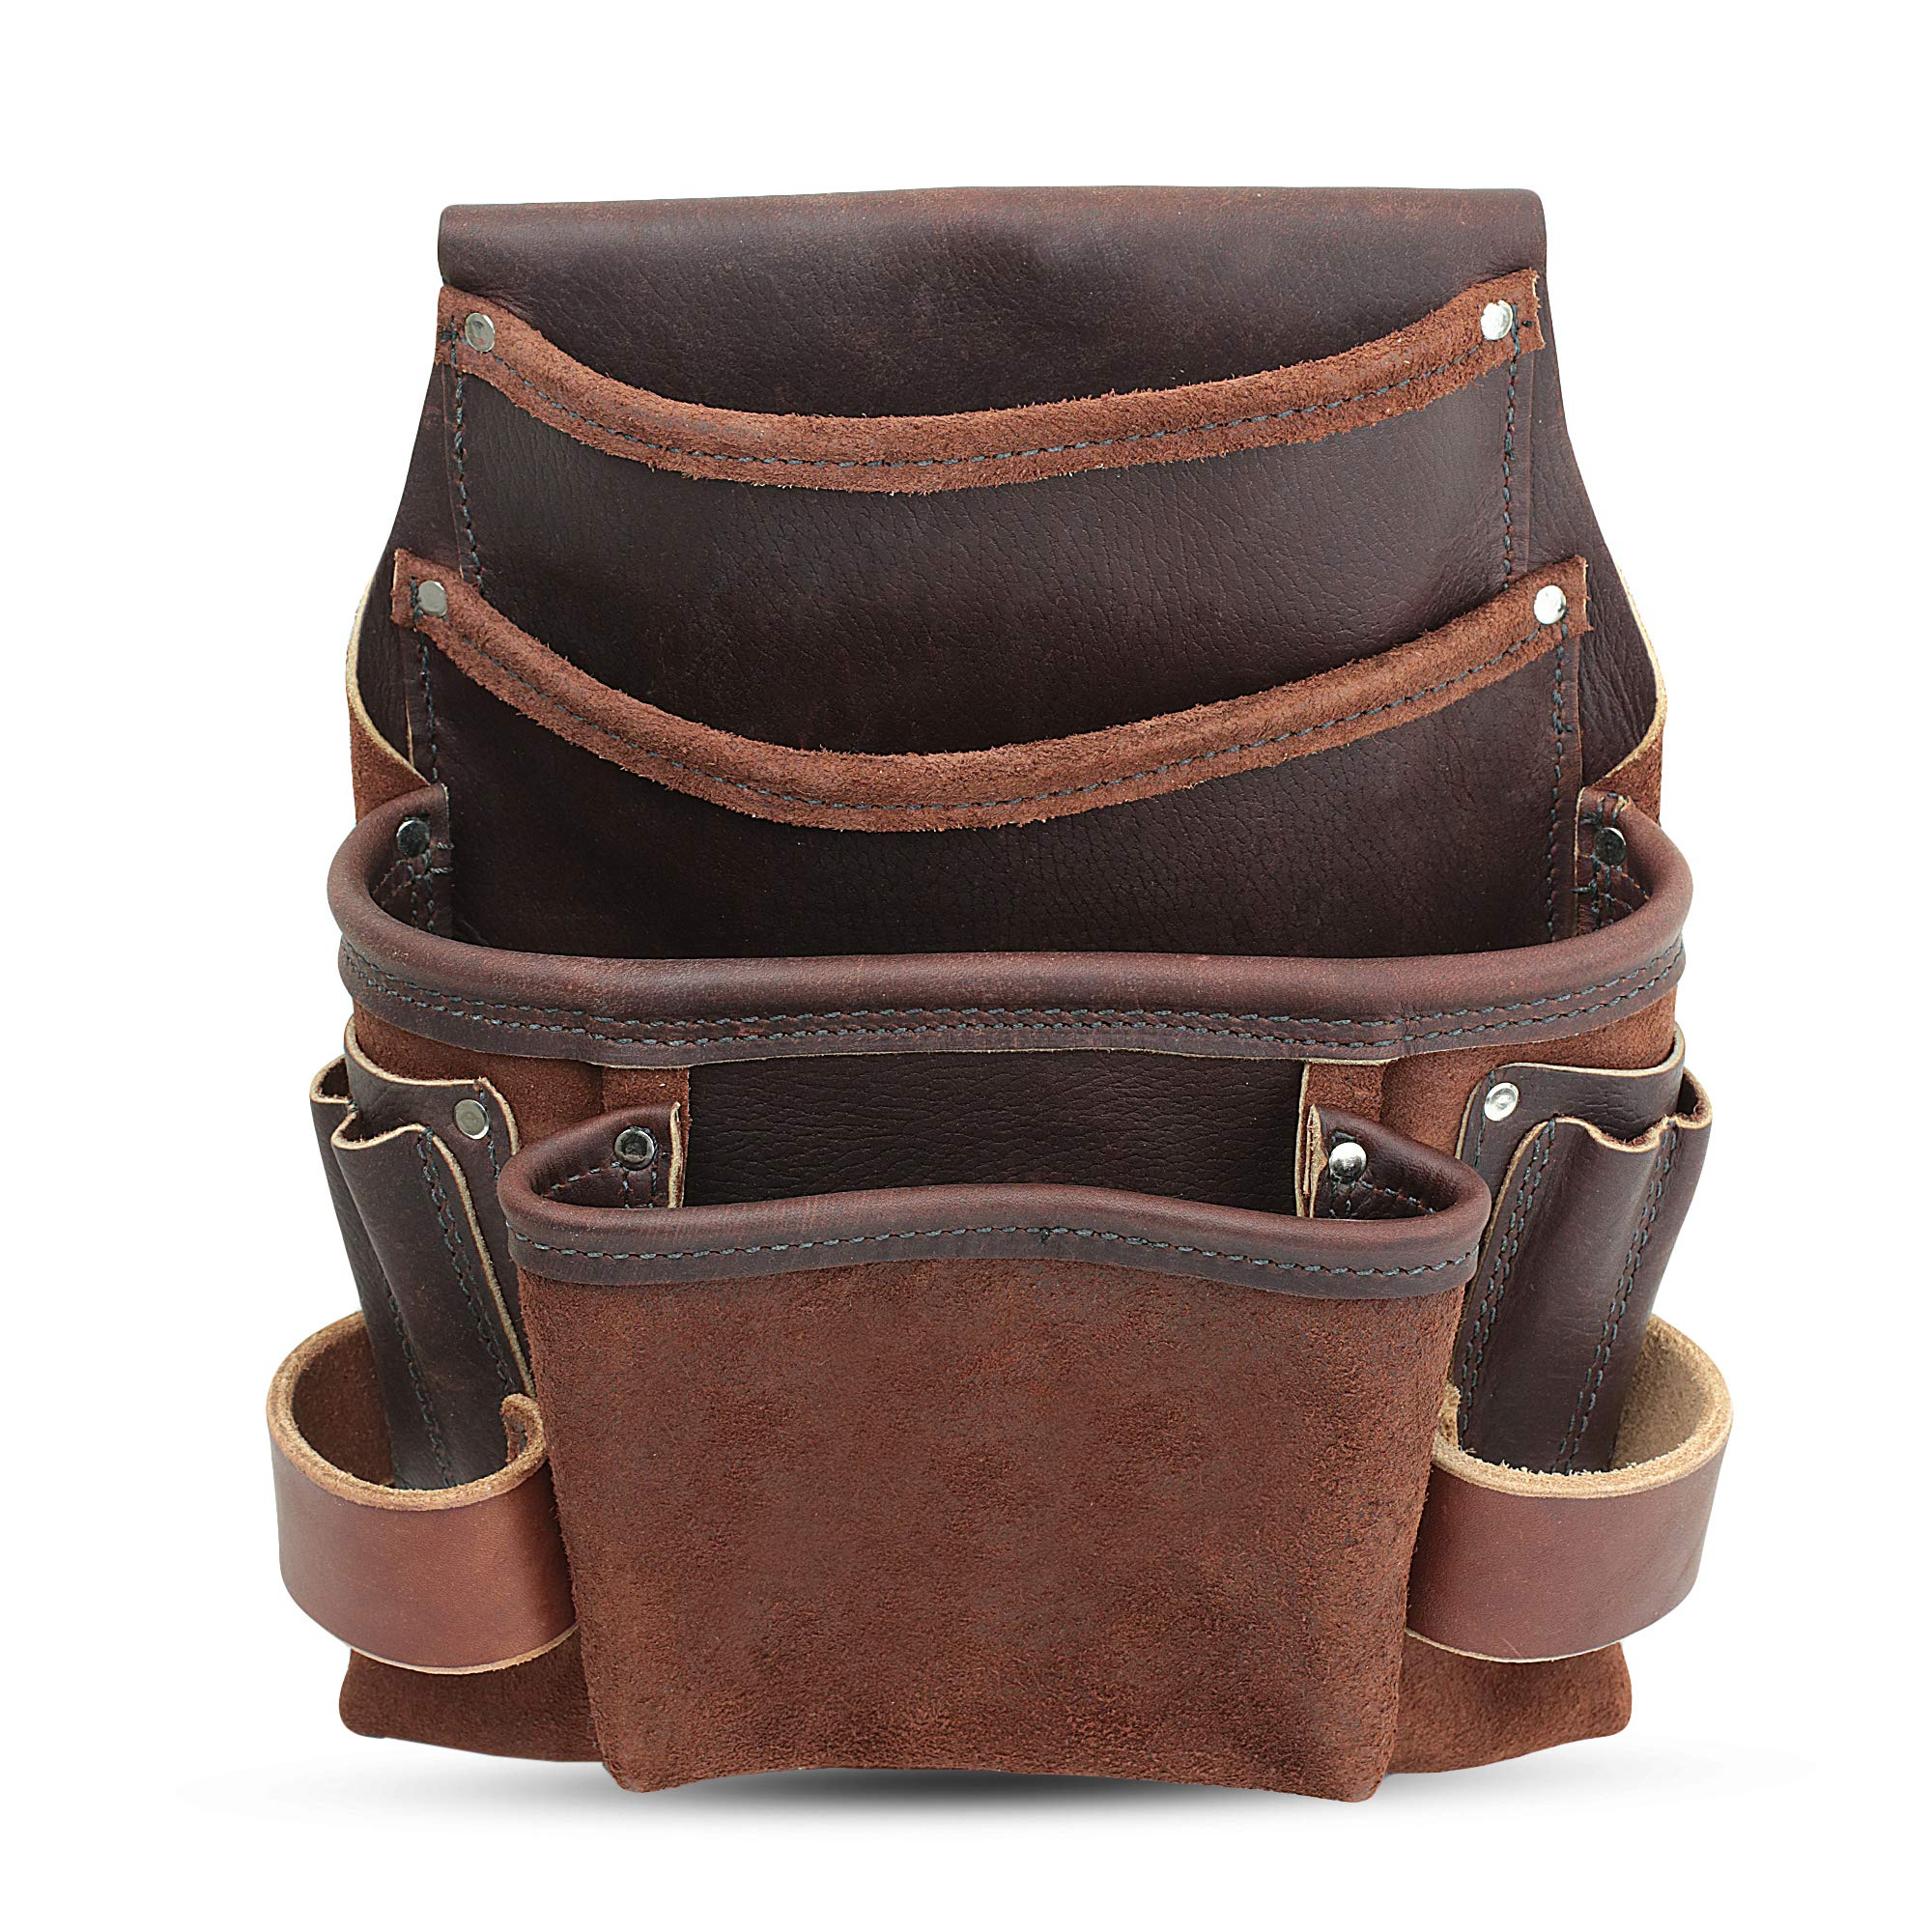 Heavy Duty Tool Pouch - All Leather - Reinforced Seams - Professional Grade (4 Pocket Framing Pouch) by Nemean Leather